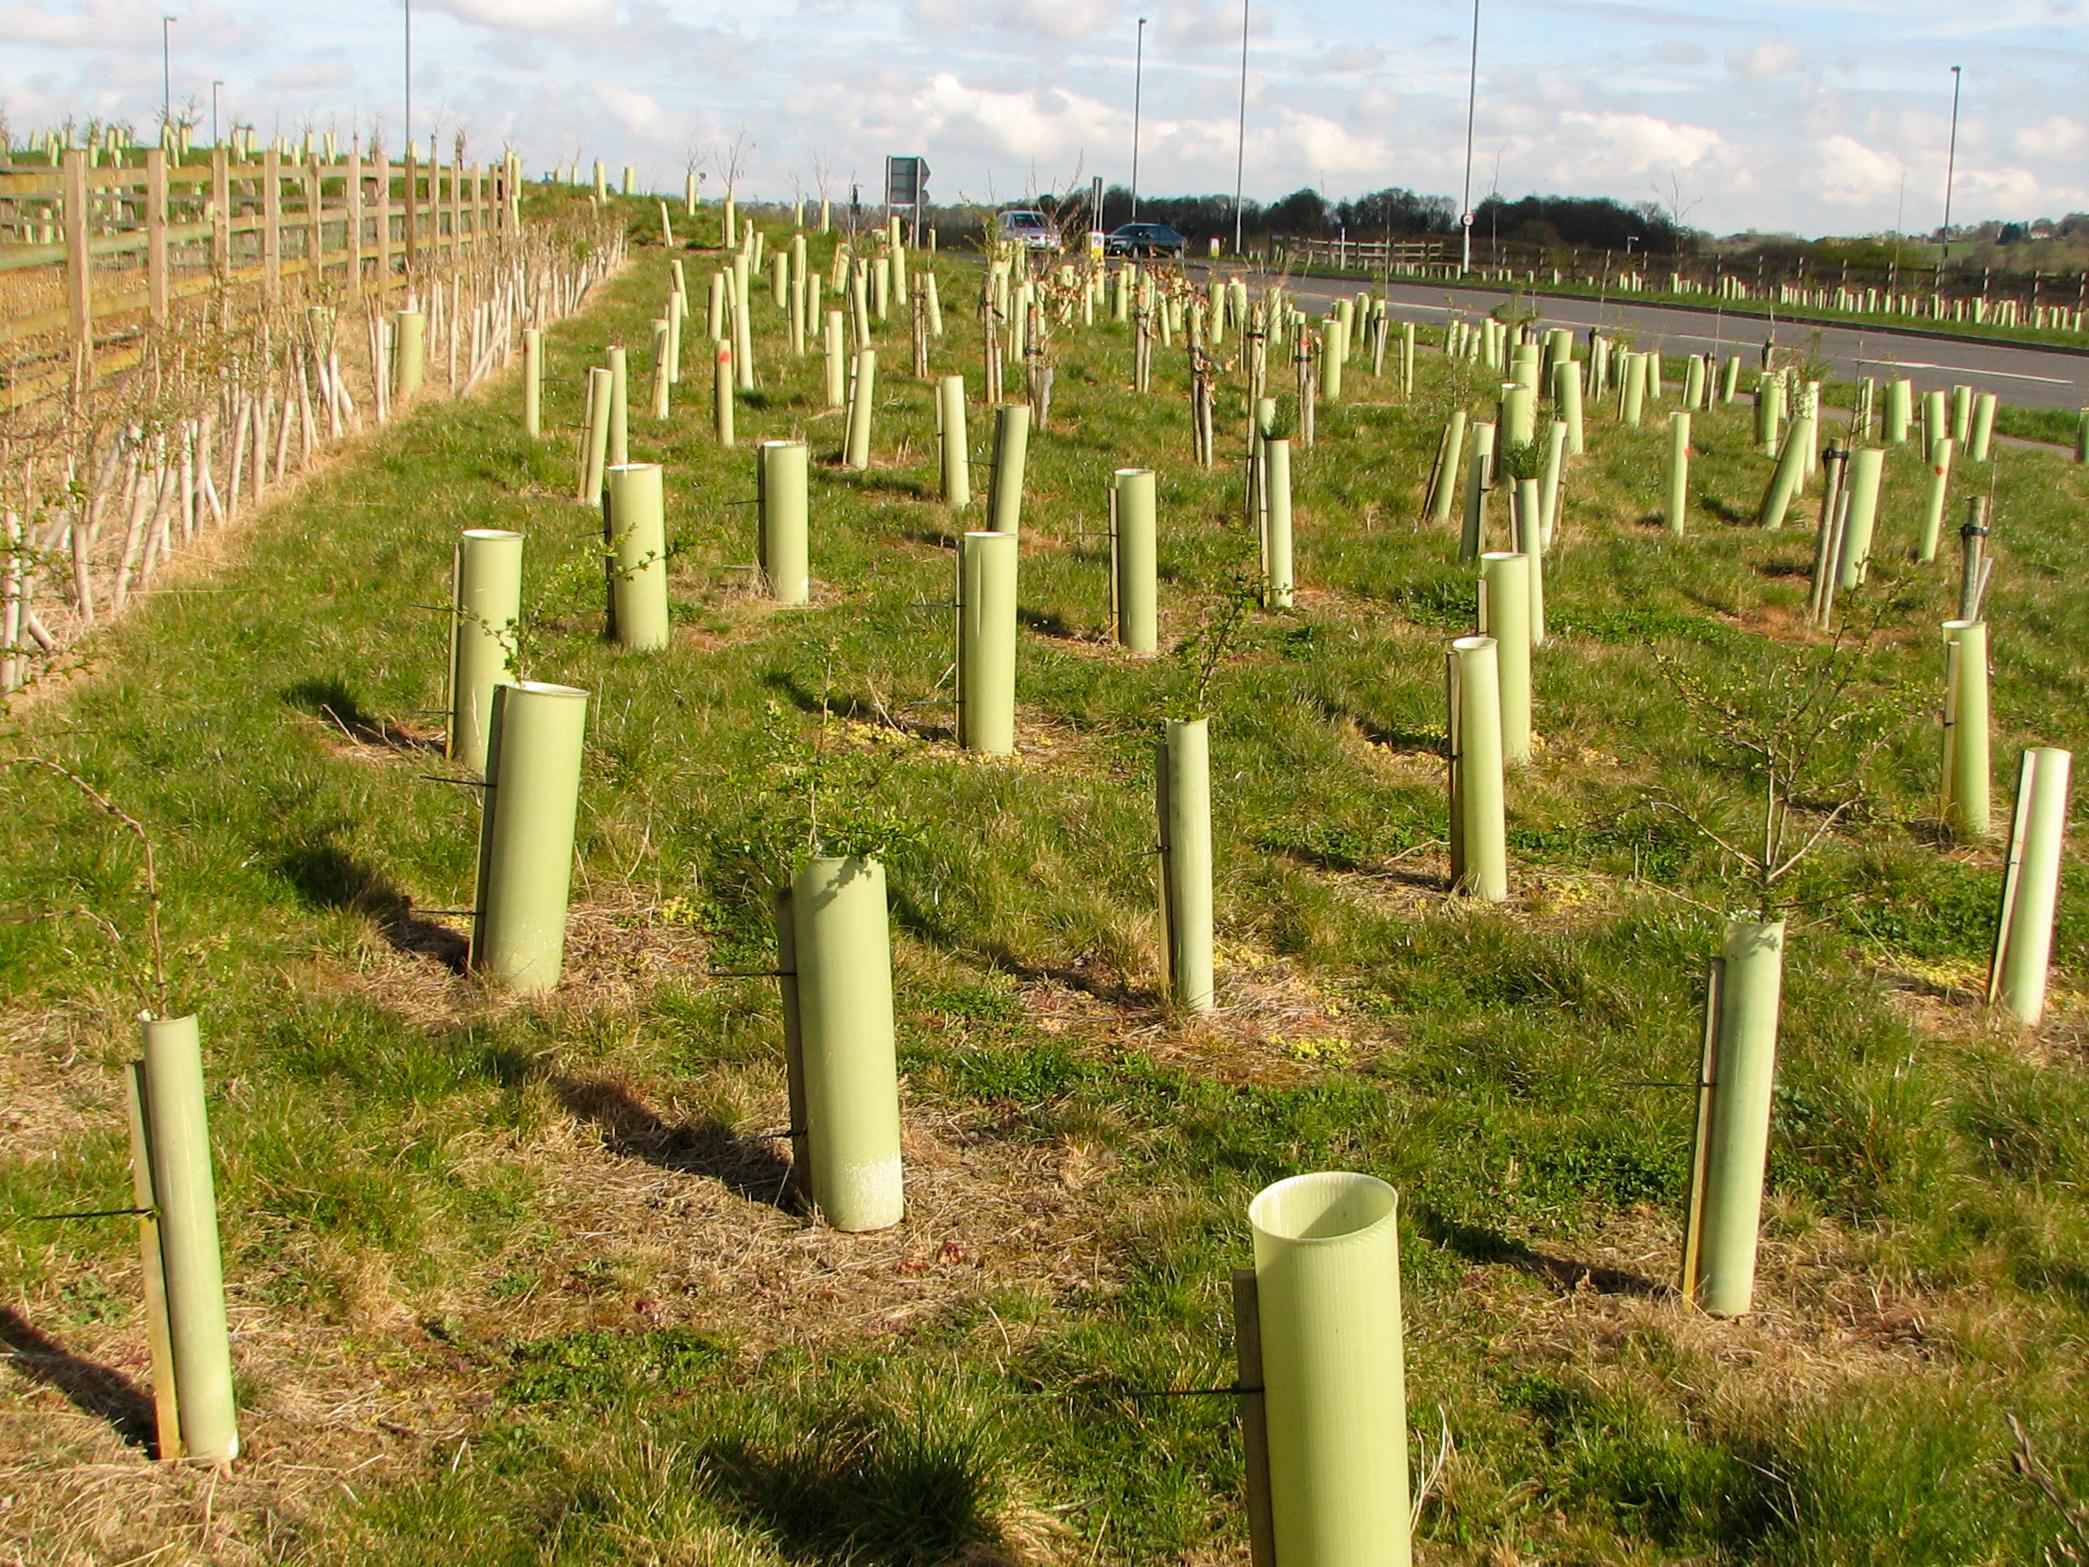 Tree planting is a great way to enhance the green space or soft landscaping on your scheme - it provides green space; screening for visibility and noise; and habitat for a range of native species. Getting the right species mixes and planting design for your site requires expert input to maximise these values.